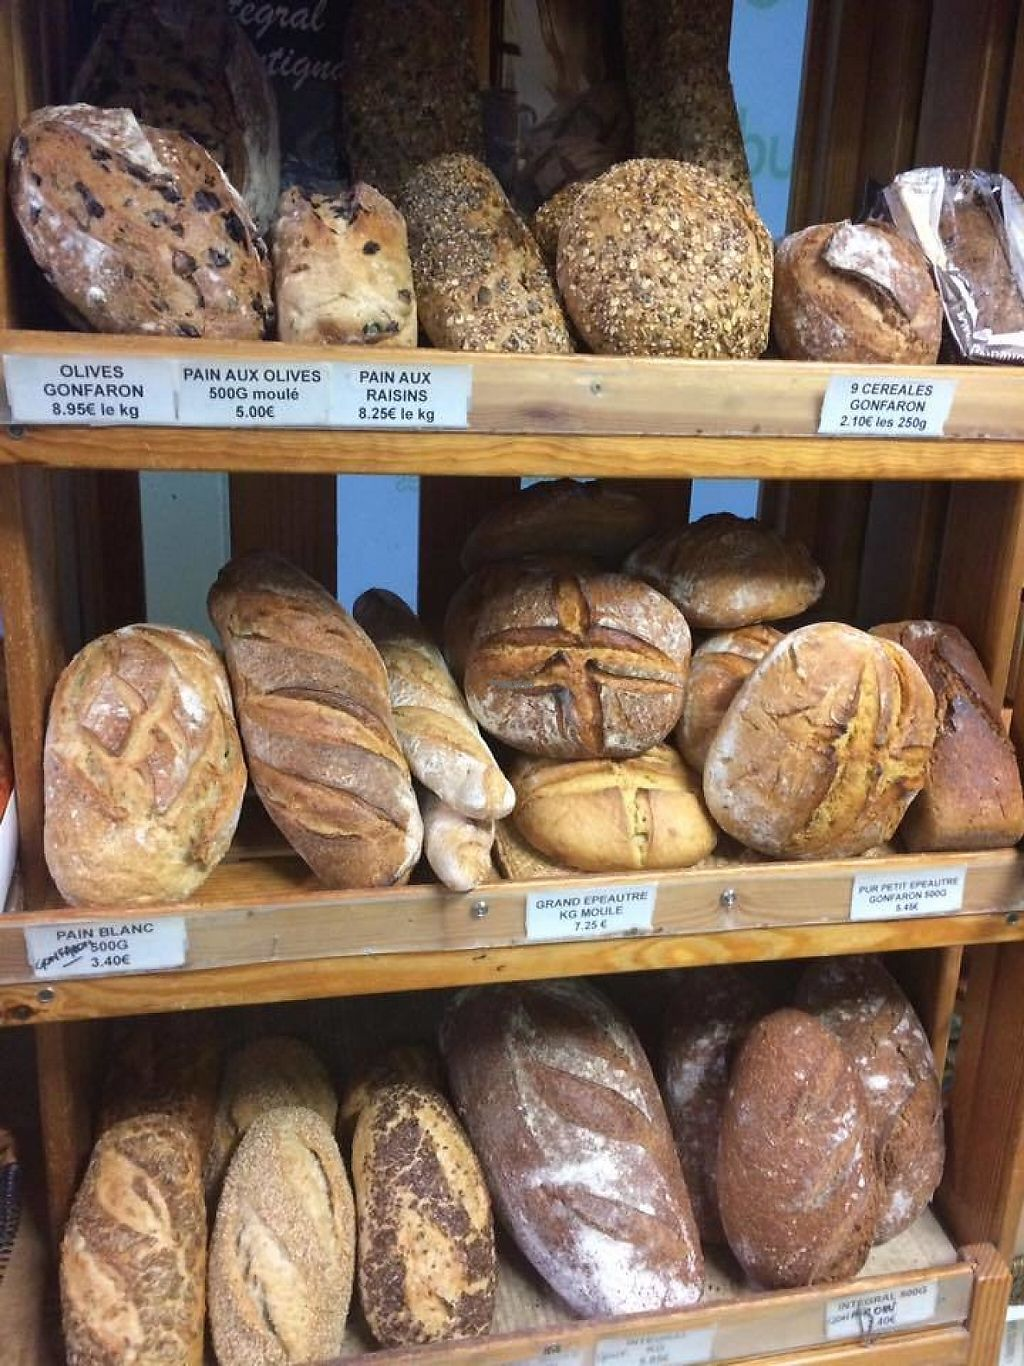 """Photo of Le Panier Vert  by <a href=""""/members/profile/Logge"""">Logge</a> <br/>Bread <br/> December 14, 2016  - <a href='/contact/abuse/image/48174/201077'>Report</a>"""